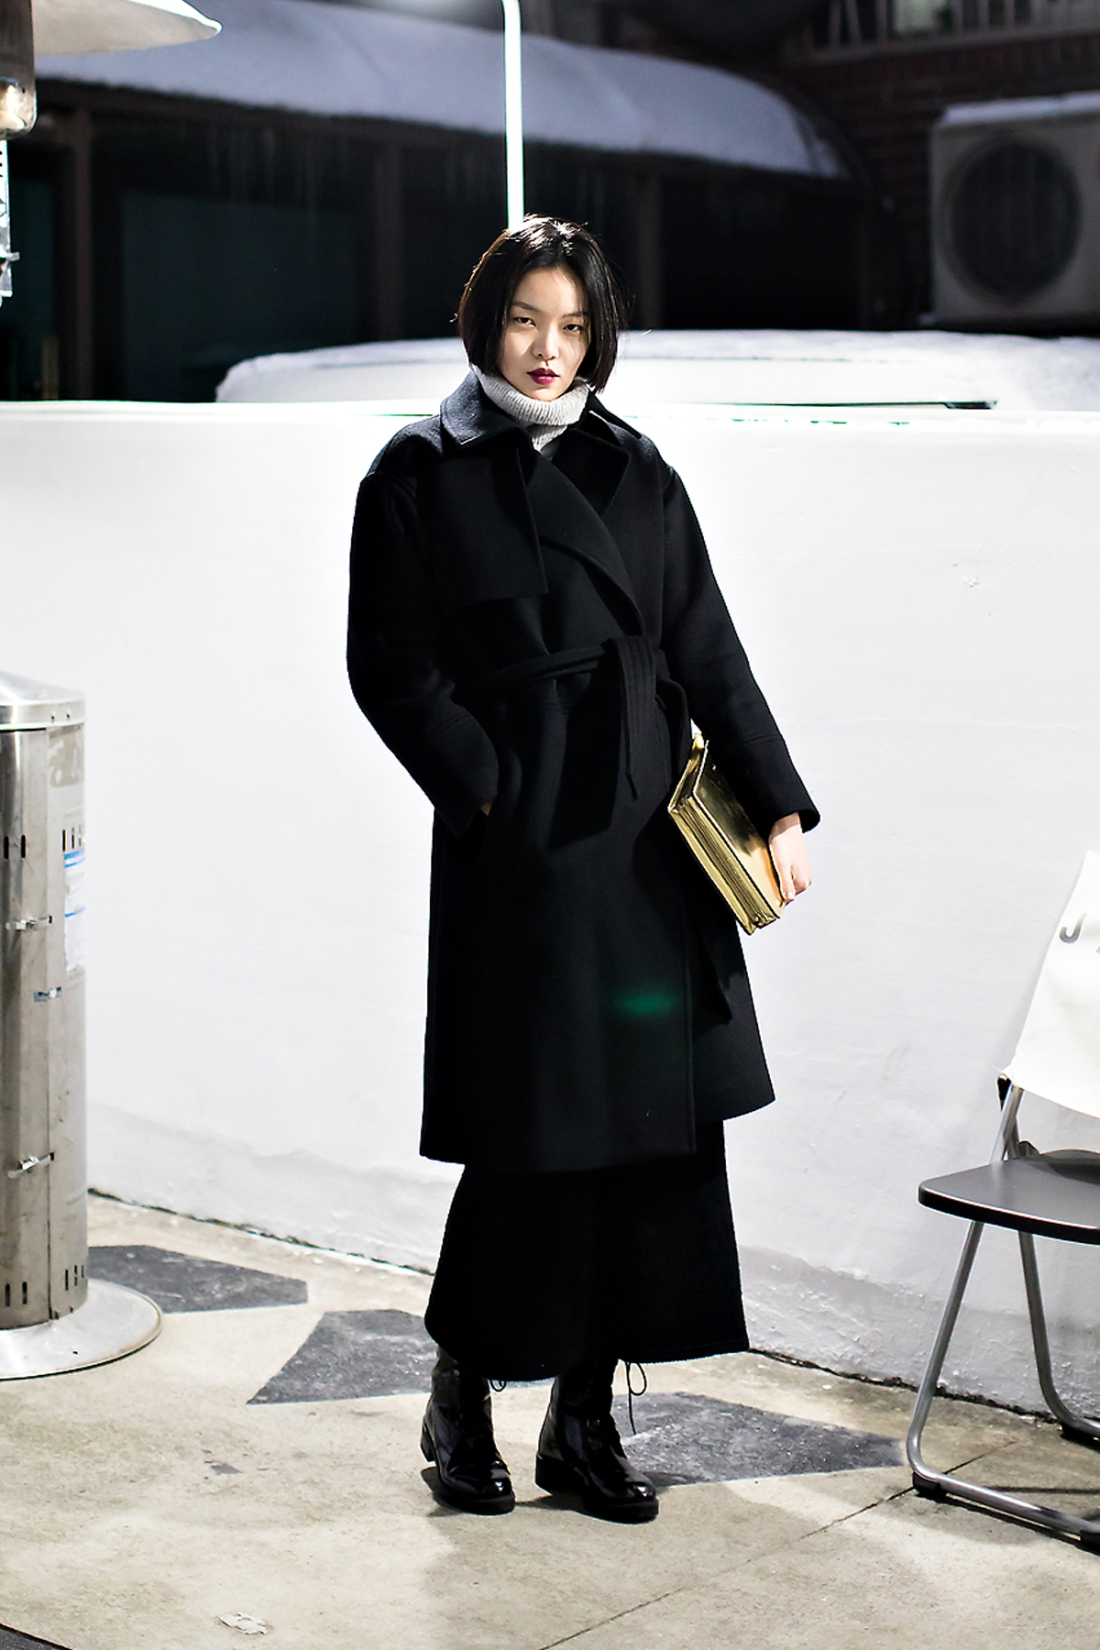 Kim Hanji, Street Fashion 2017 in SEOUL.jpg